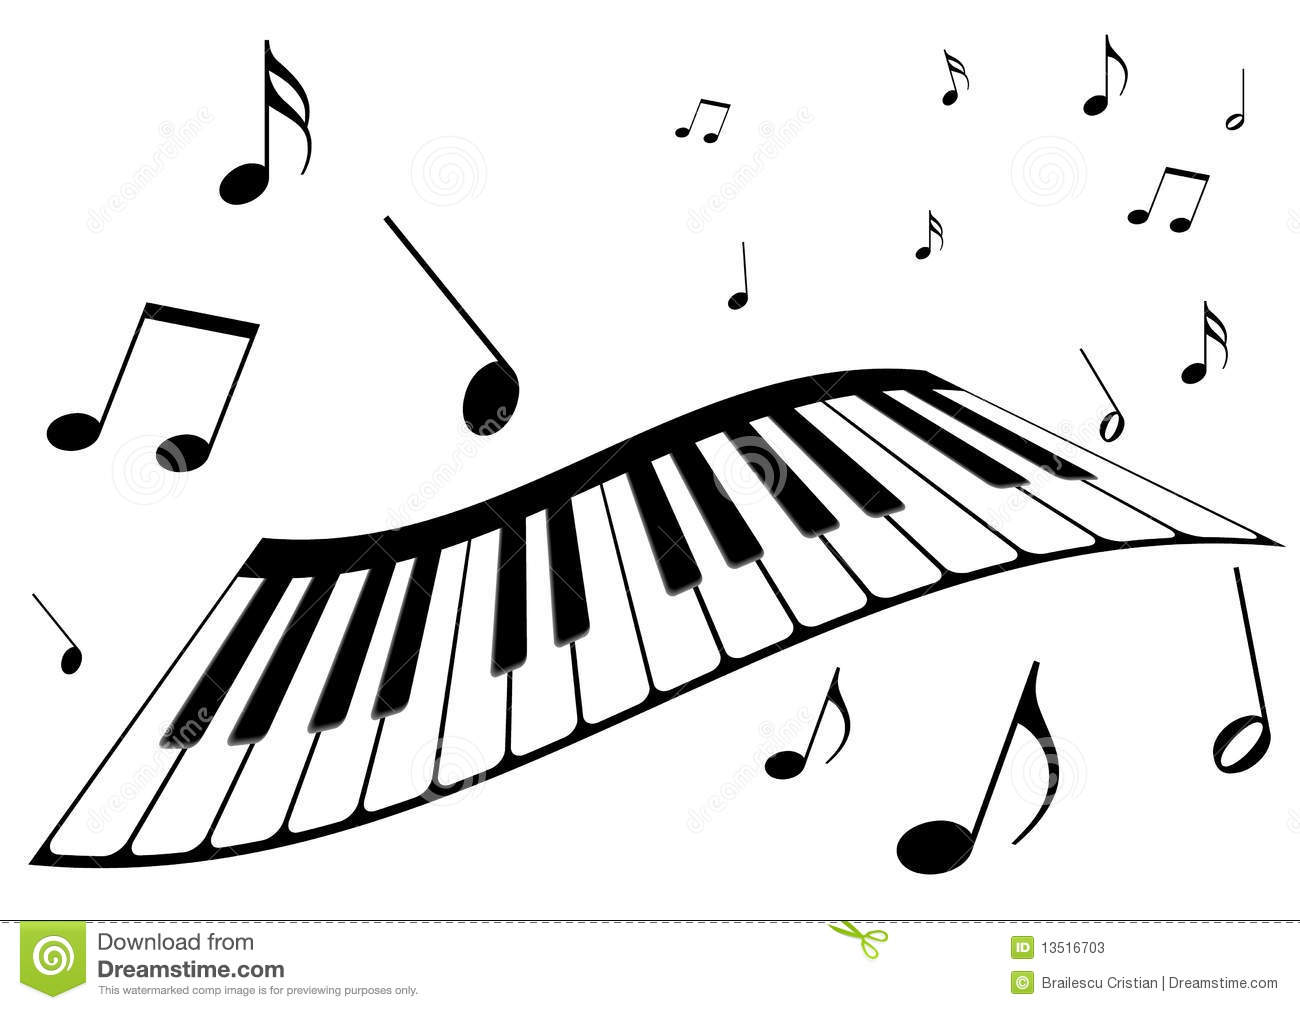 hight resolution of music notes clipart black and white